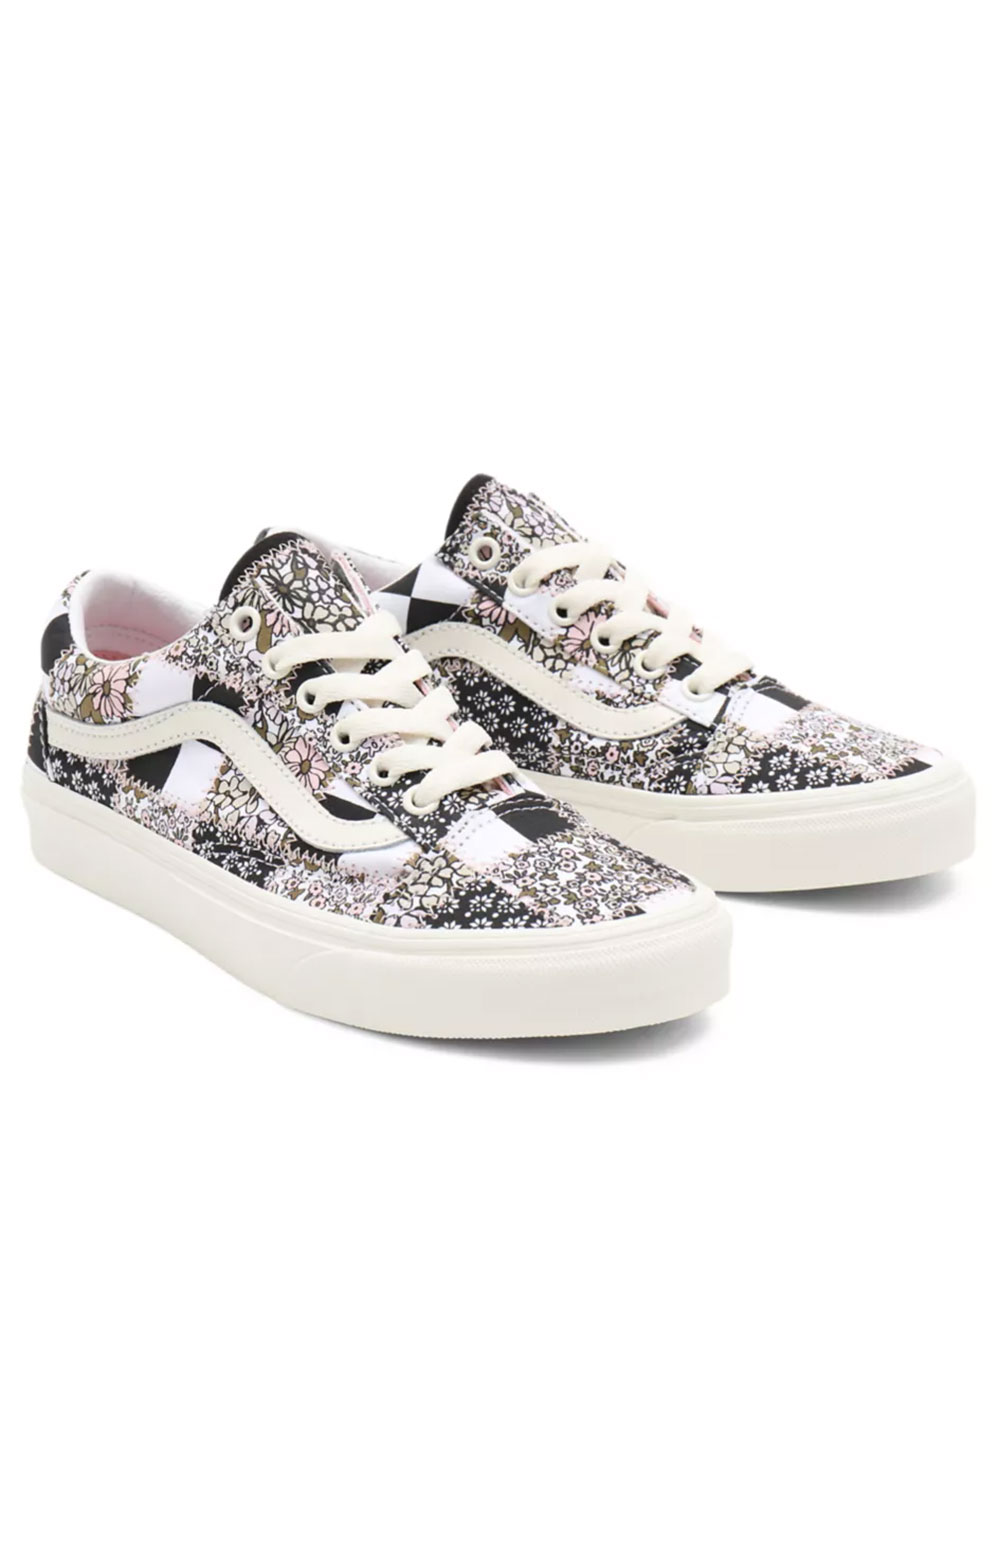 (8G19FY) Patchwork Floral Old Skool Shoes - Multi/Marshmallow  5